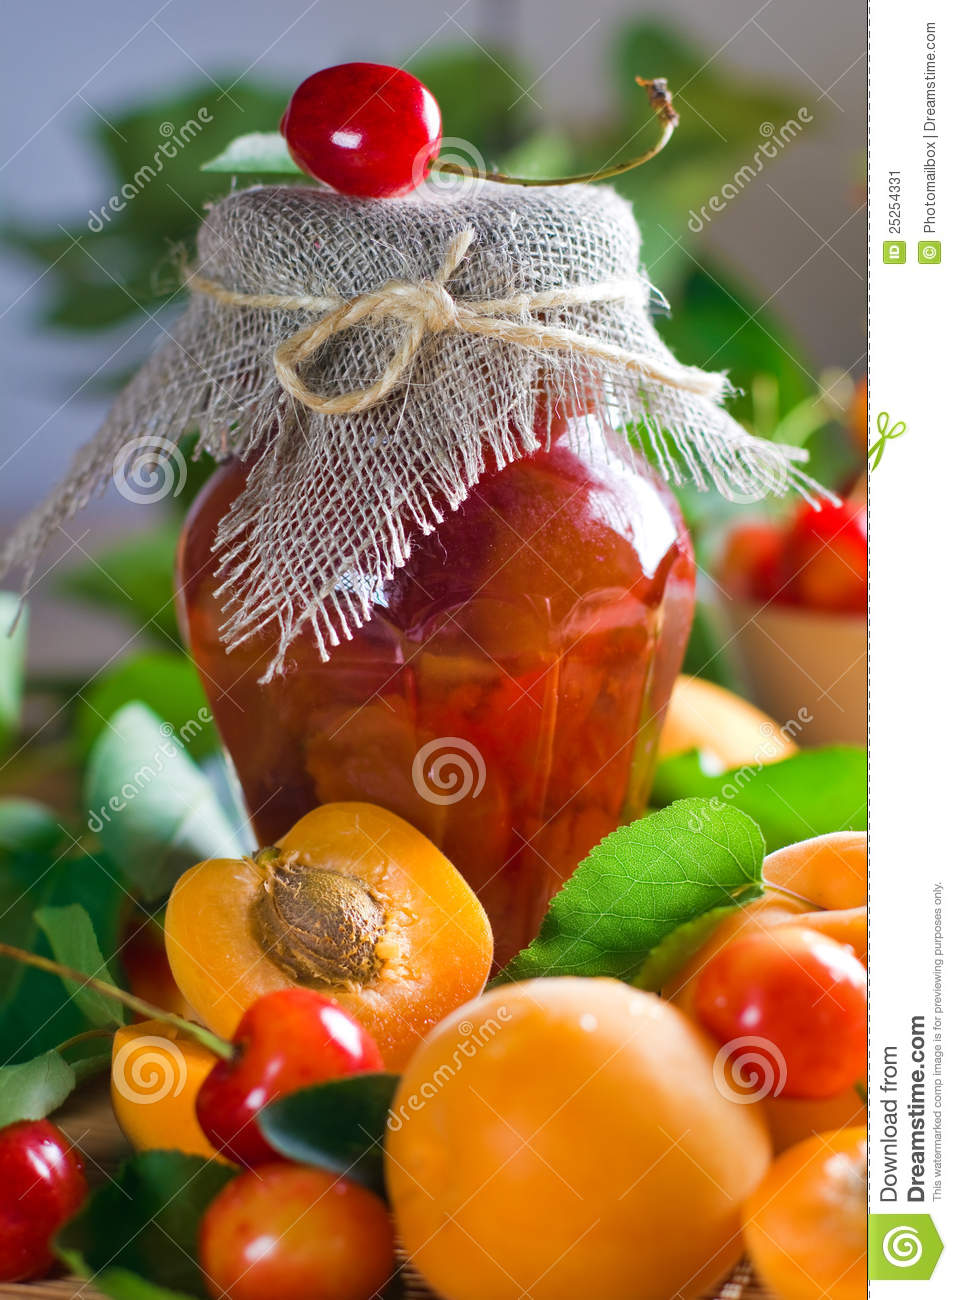 Apricot and sweet cherry jam in jar and fresh fruits with leaves.